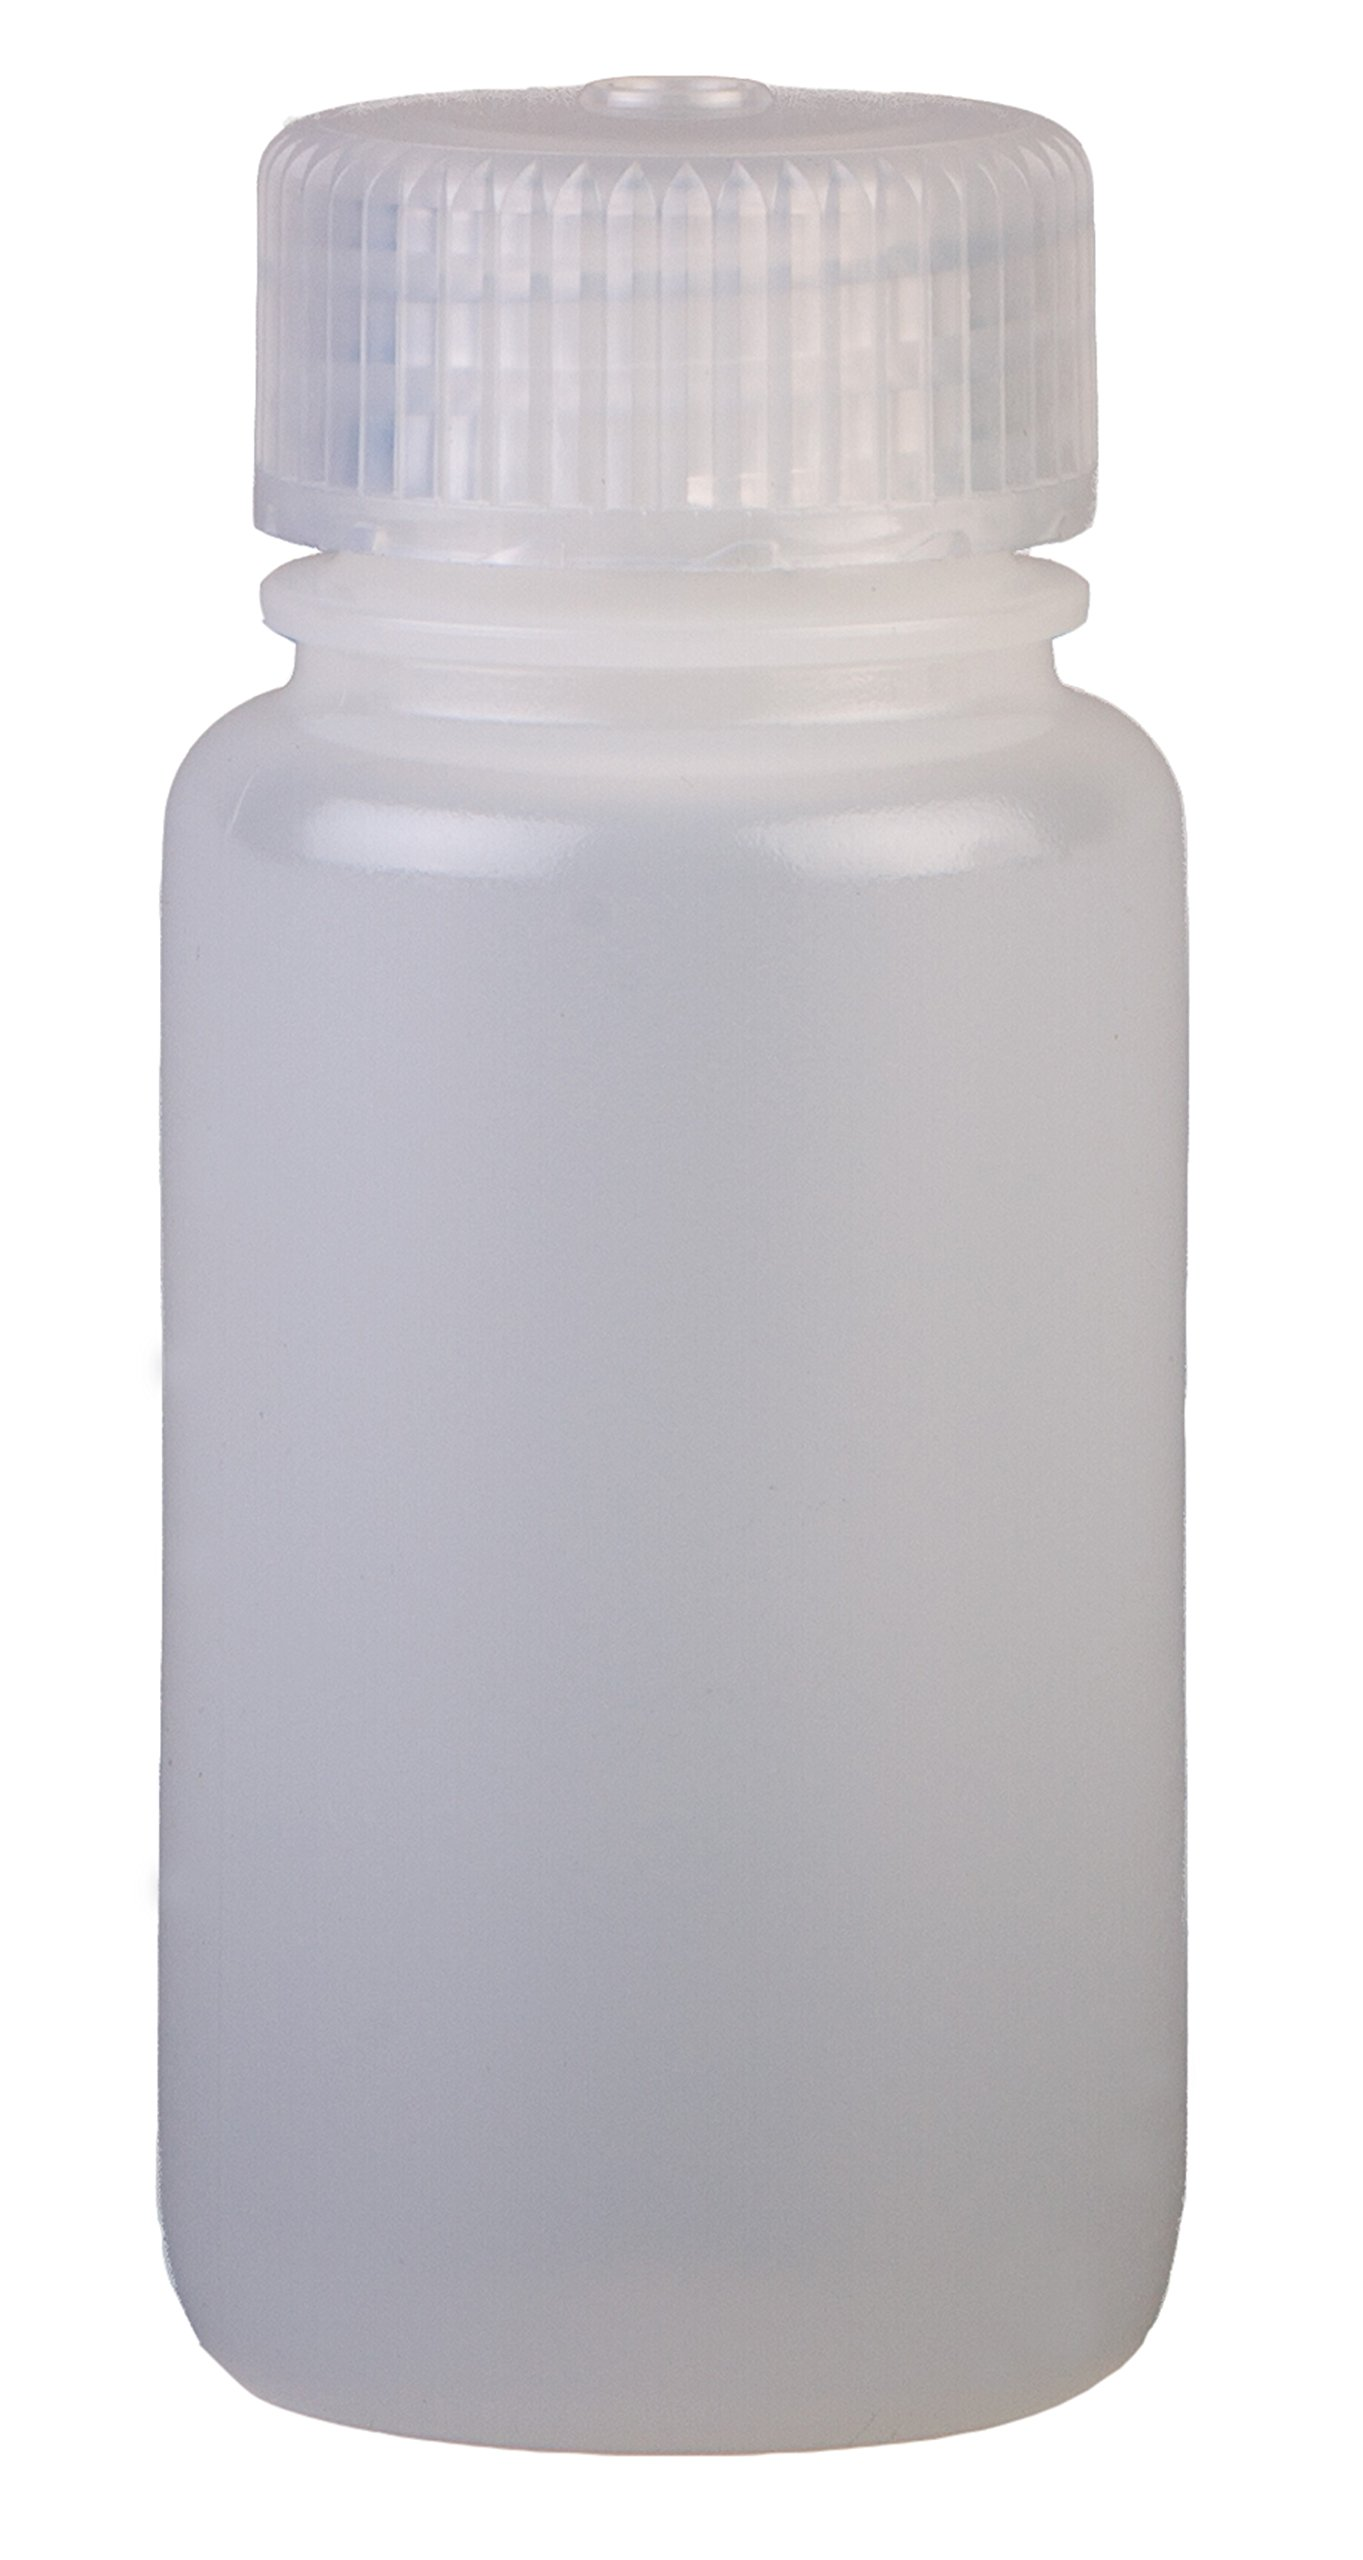 Consolidated Plastics 36041 Nalgene Wide Mouth Packaging Bottle, HDPE, 60 ml, 12 Piece